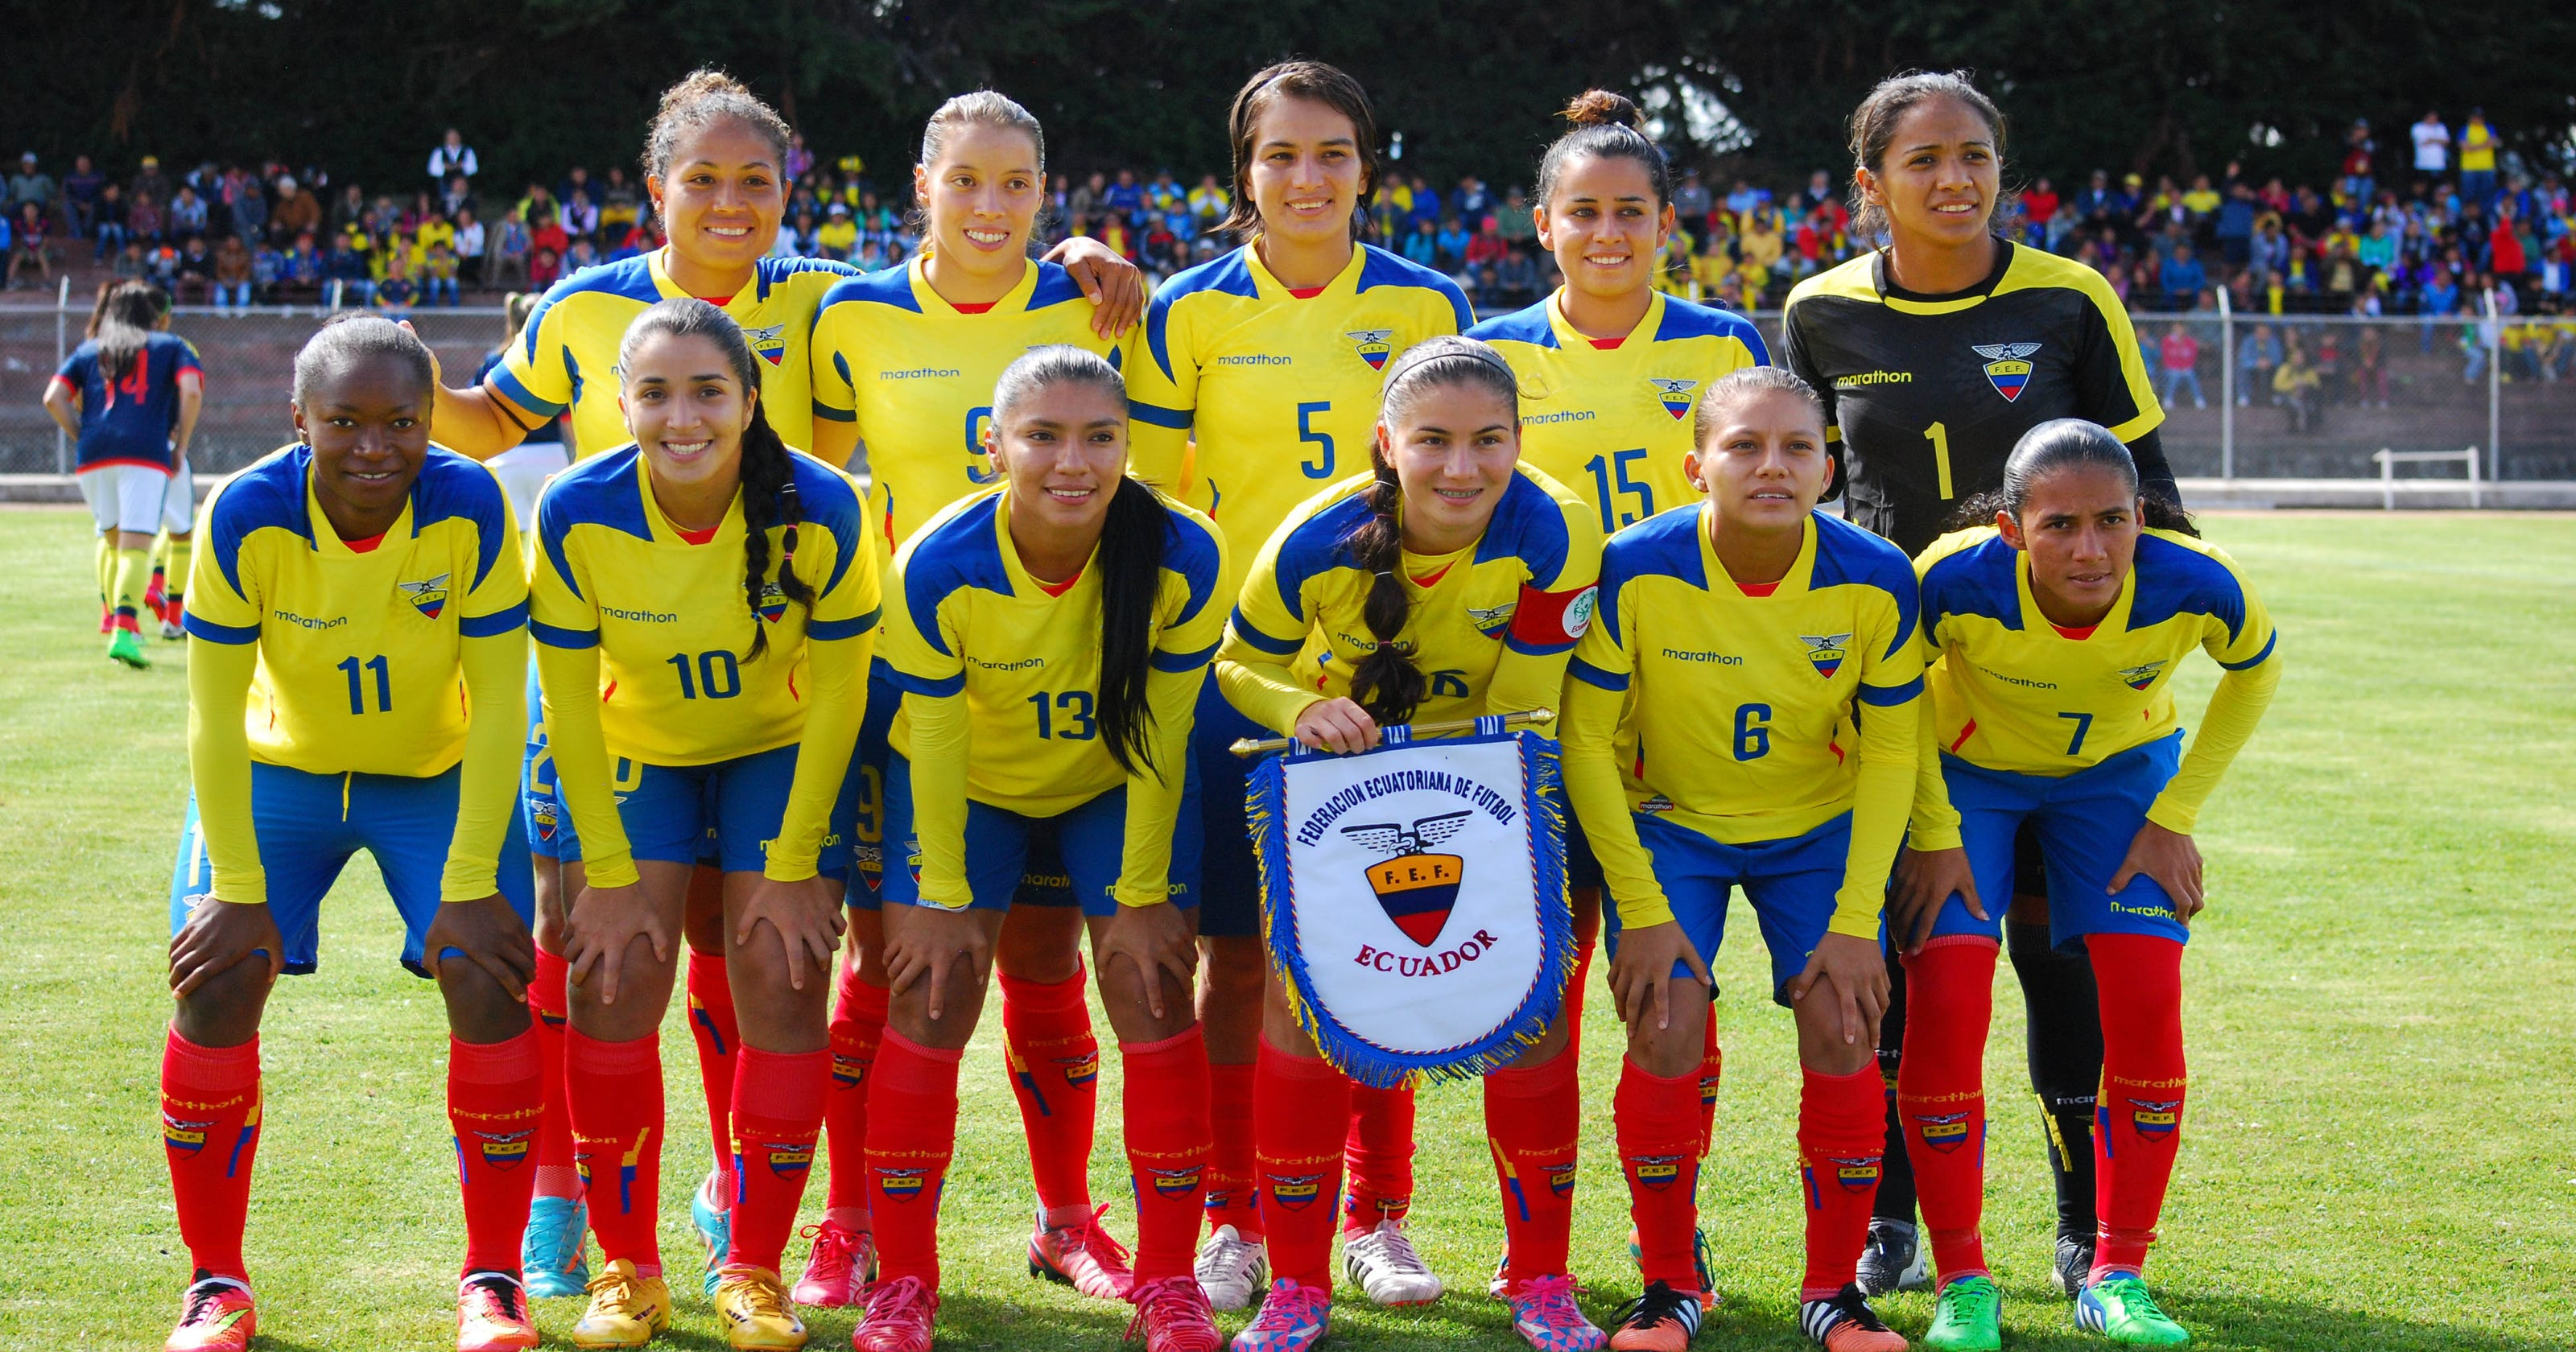 d5a23a9bf Ecuador will likely be overpowered in its first Women s World Cup